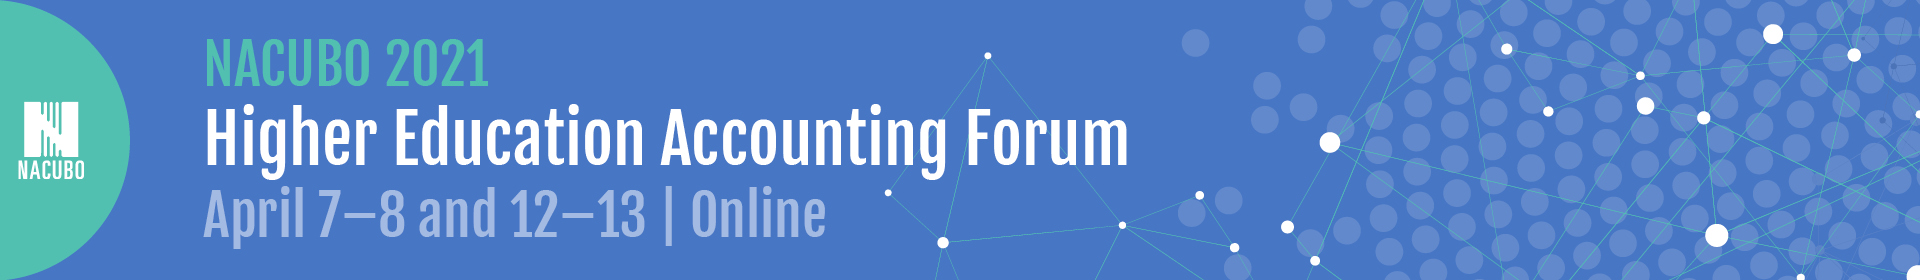 2021 Higher Education Accounting Forum Event Banner